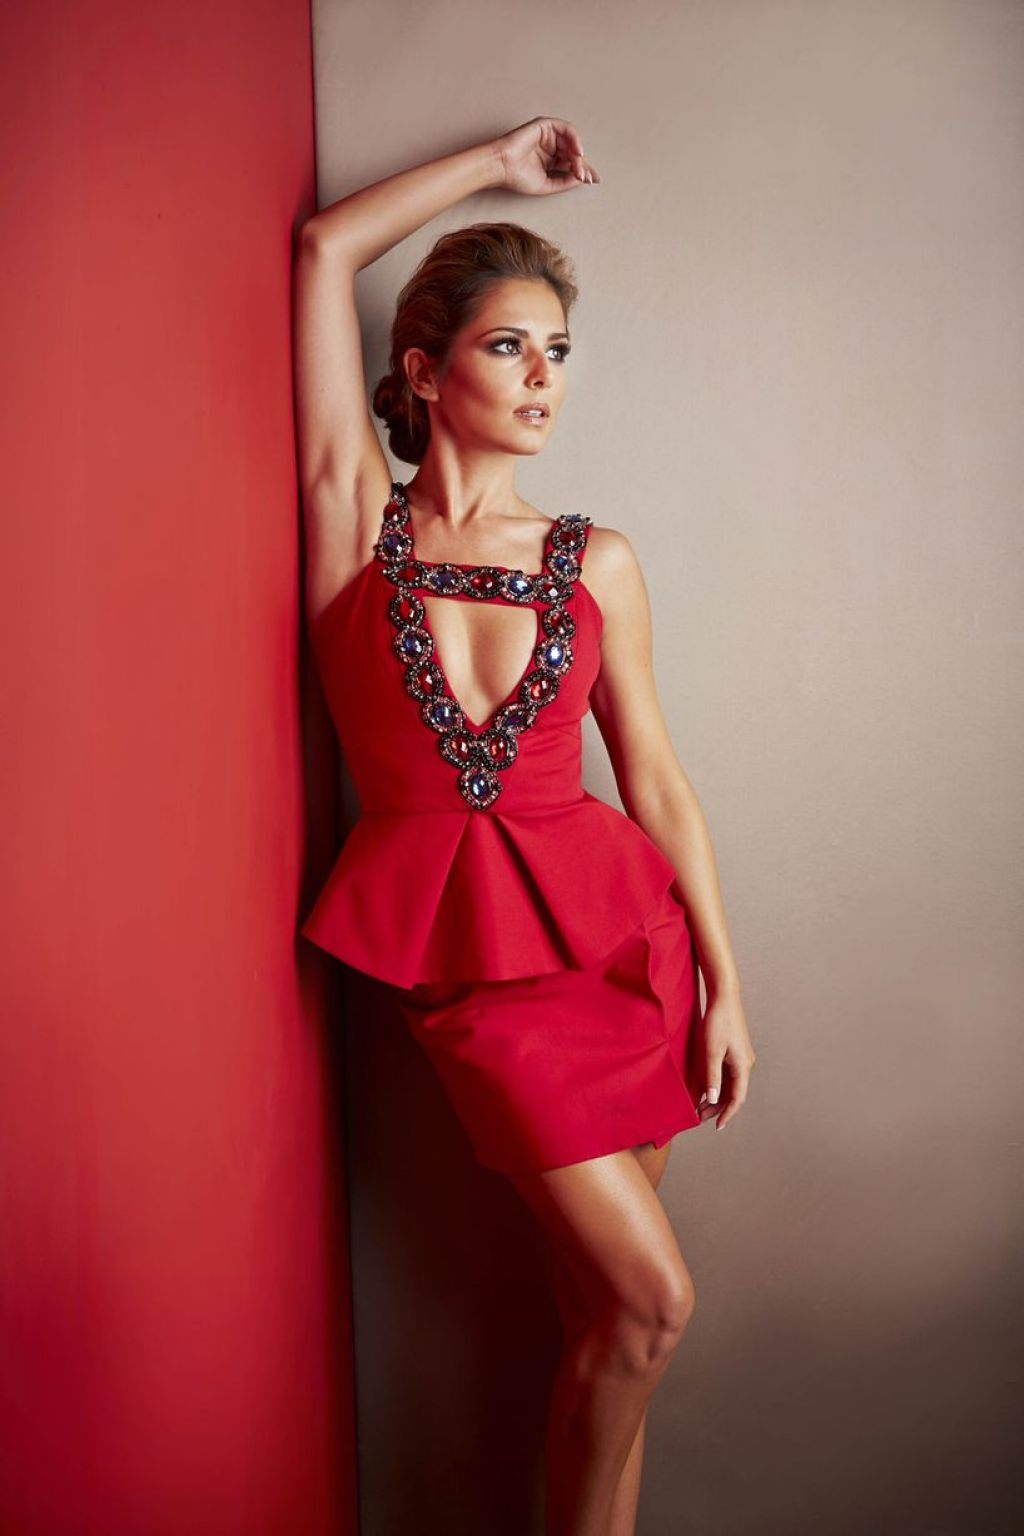 Cheryl Fernandez-Versini Photoshoot – The X Factor 2014 Promos